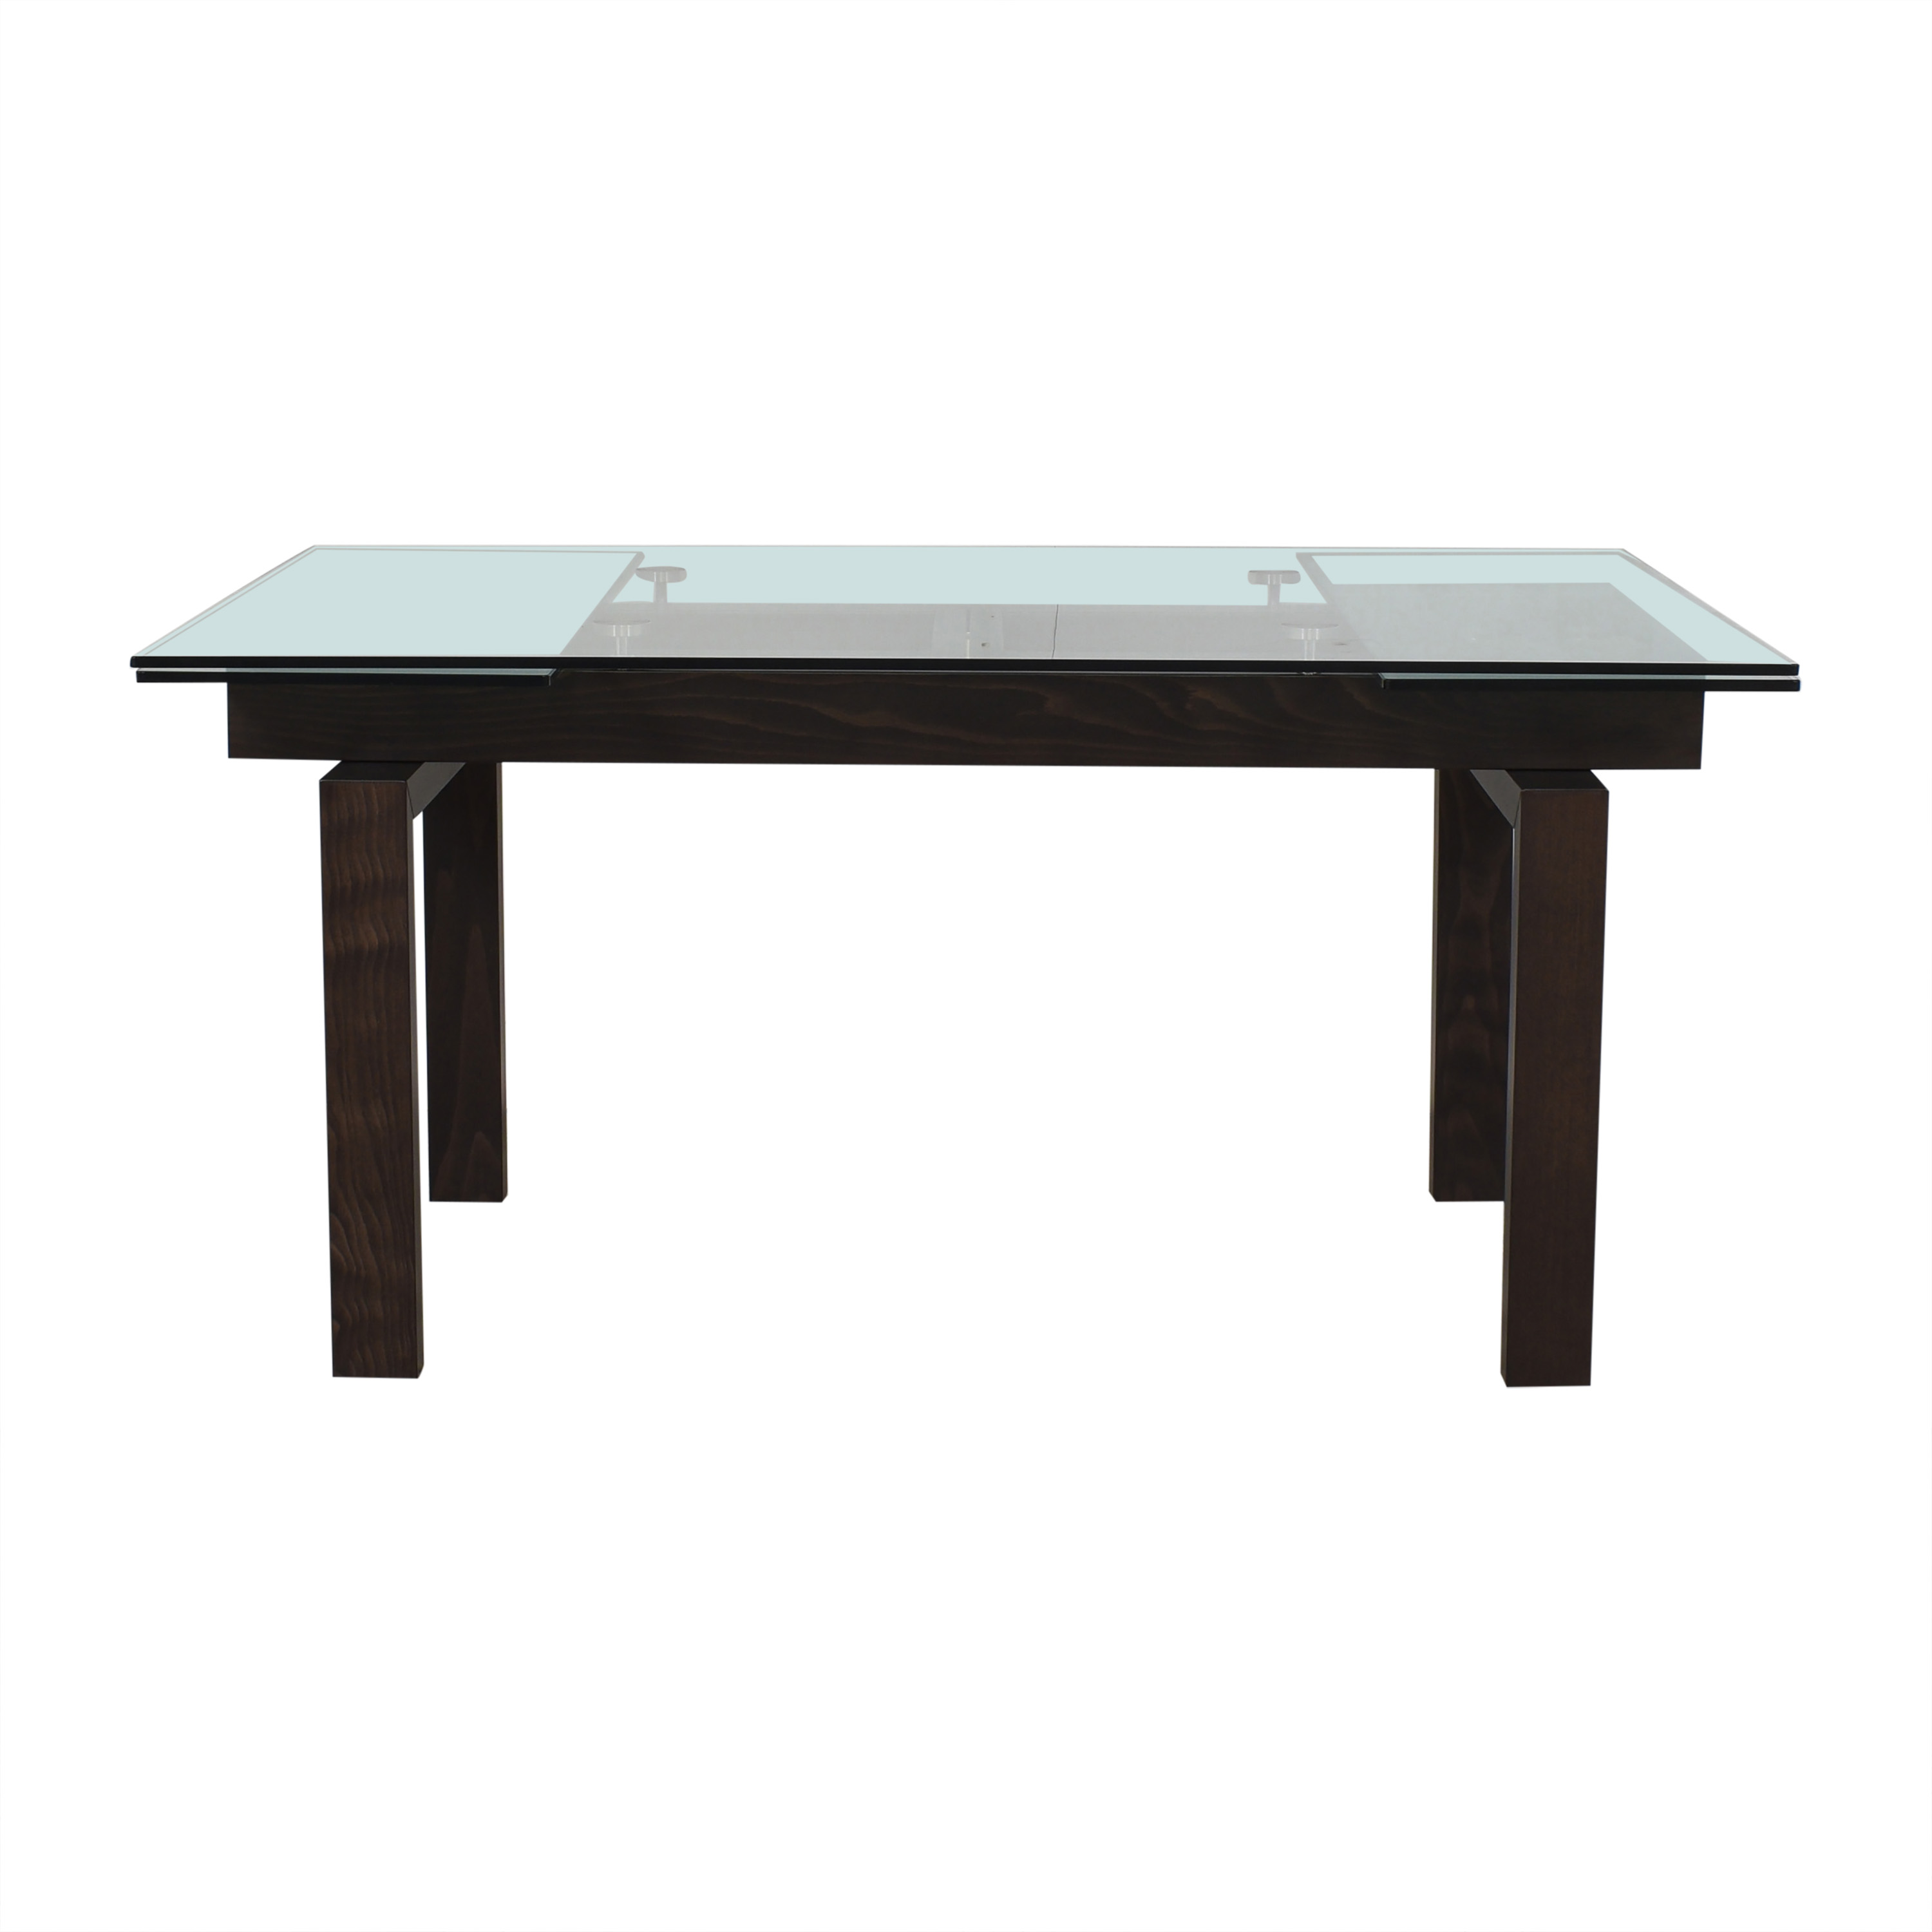 Calligaris Calligaris Hyper Extension Dining Table price